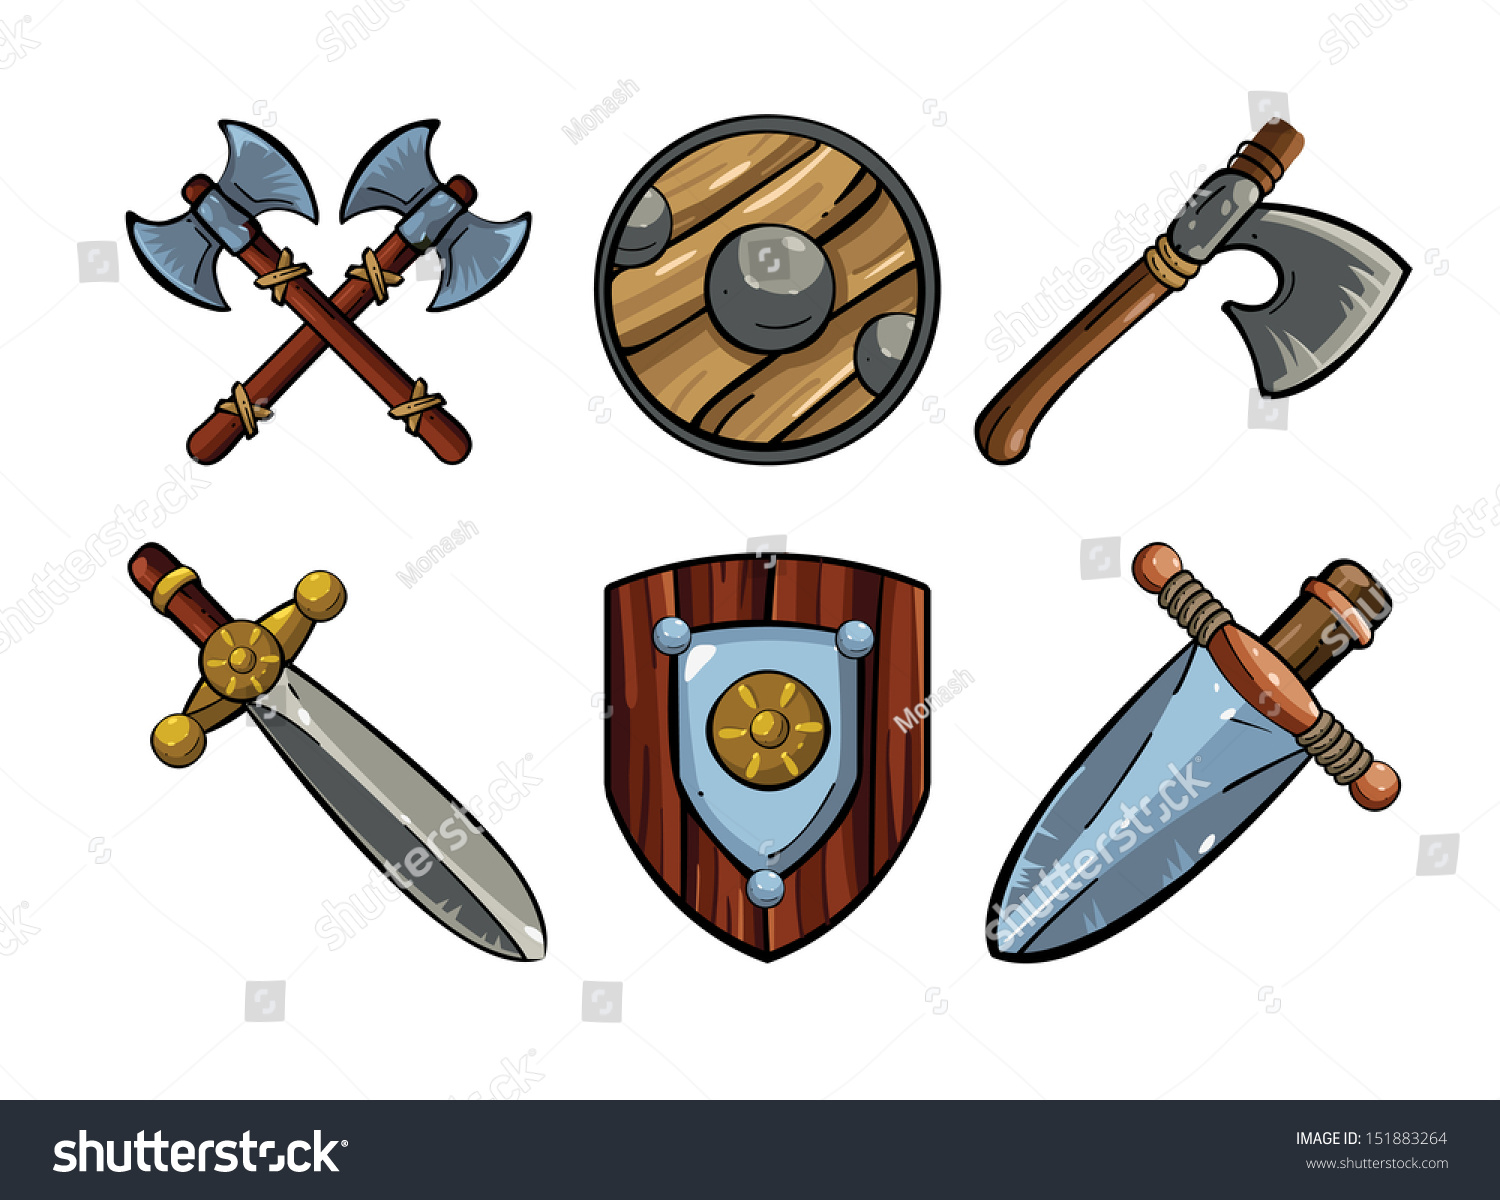 war weapons clipart - photo #28